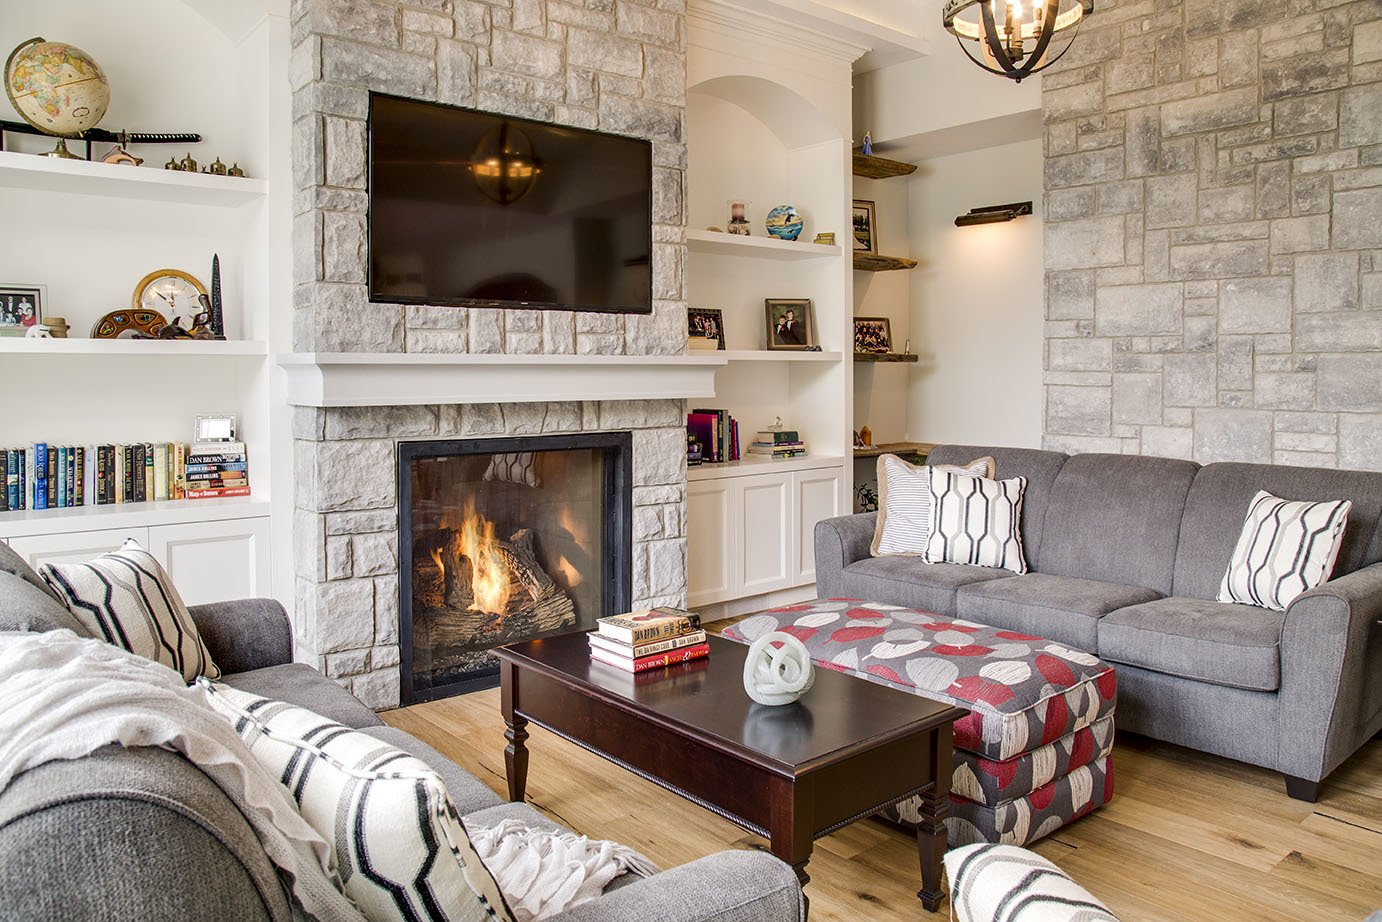 Cozy custom living space with burning stone fireplace built-in cabinetry and grey sofas